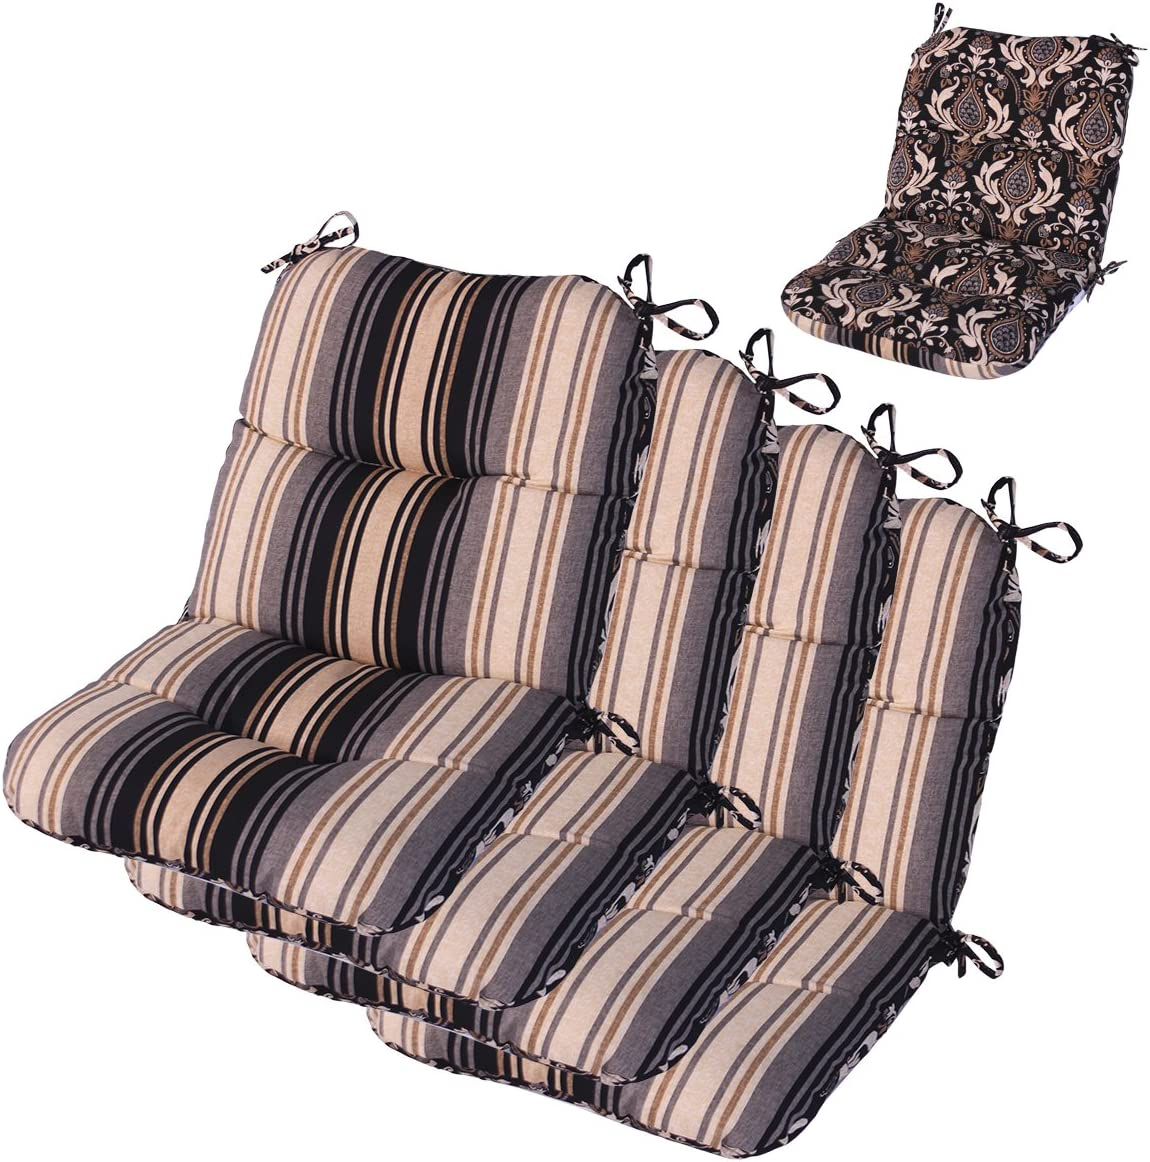 """Comfort Classics Inc. Set of 4 Mid Back Outdoor Reversible Dining Chair Cushion 20"""" x 36"""" x 3"""" H-19 in Polyester Fabric Mainstreet Stone"""